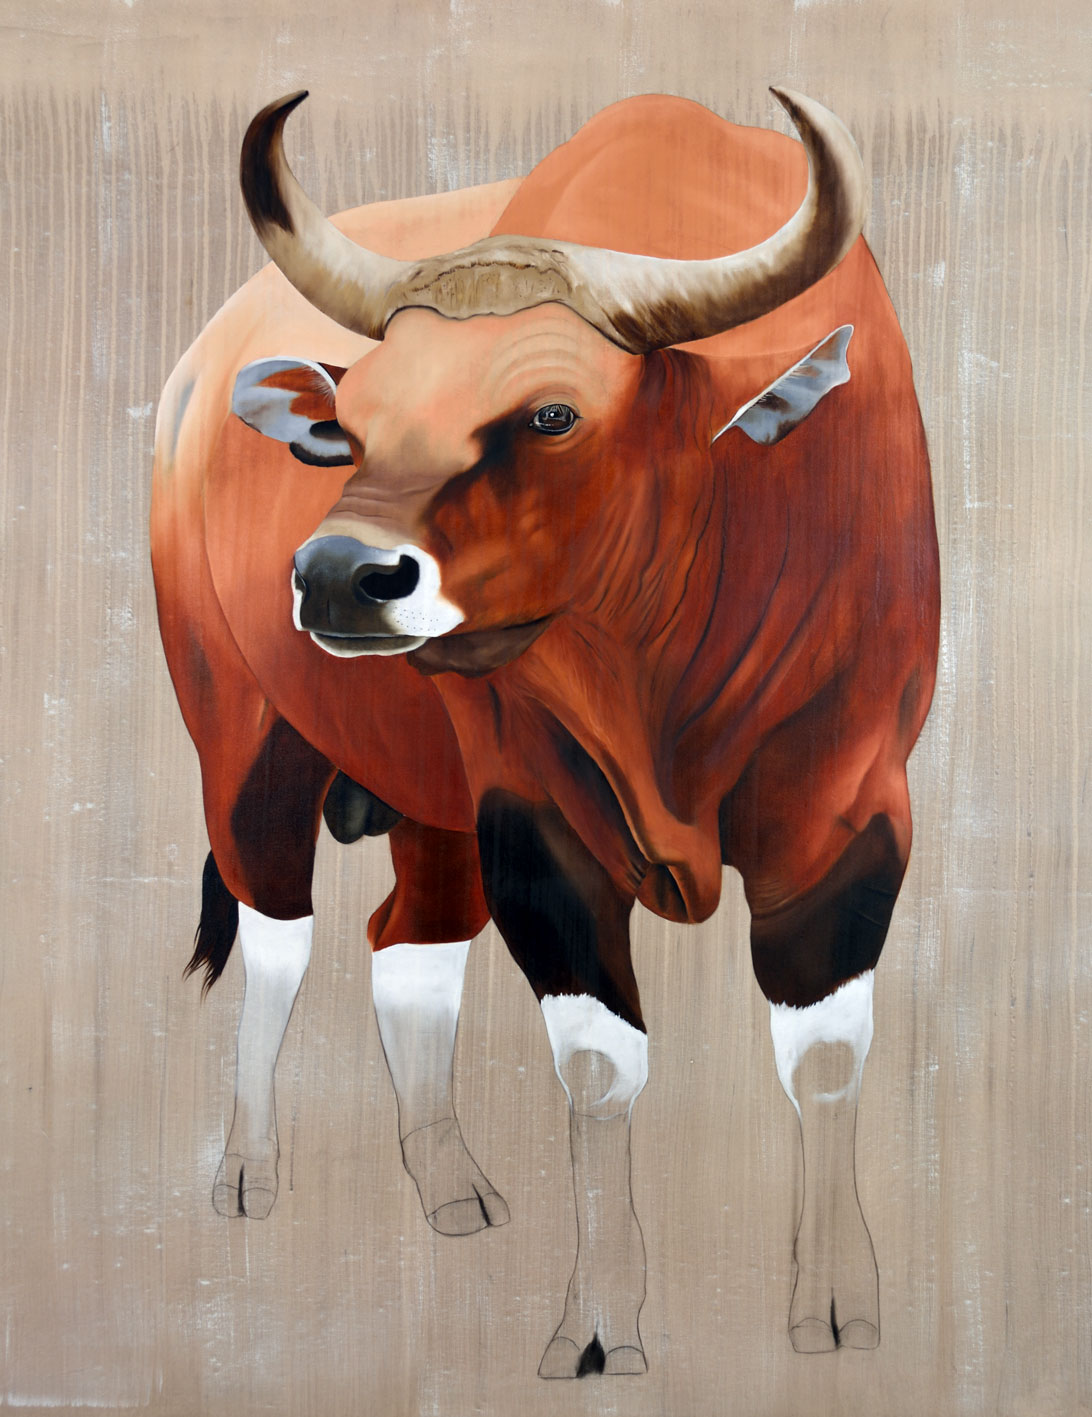 BOS JAVANICUS banteng-bos-javanicus-asian-red-bull-threatened-endangered-extinction Thierry Bisch painter animals painting art decoration hotel design interior luxury nature biodiversity conservation